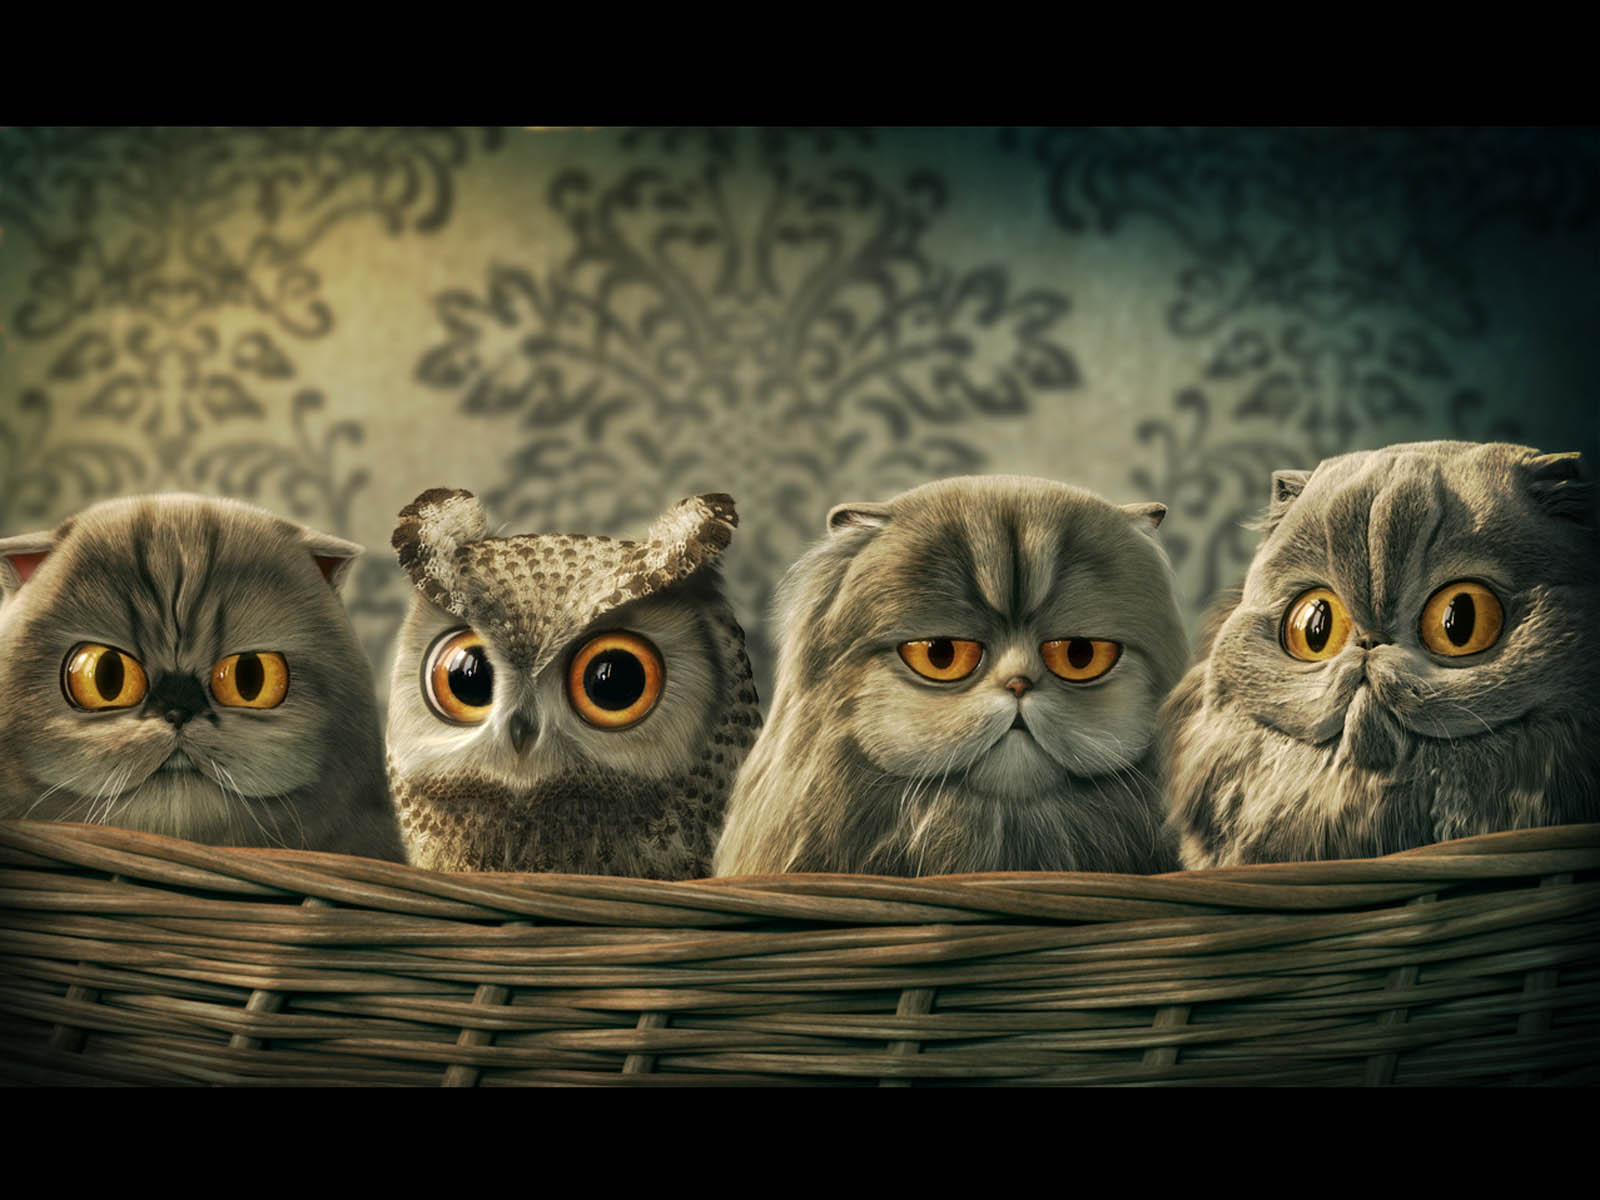 Owl desktop wallpaper hd - photo#18